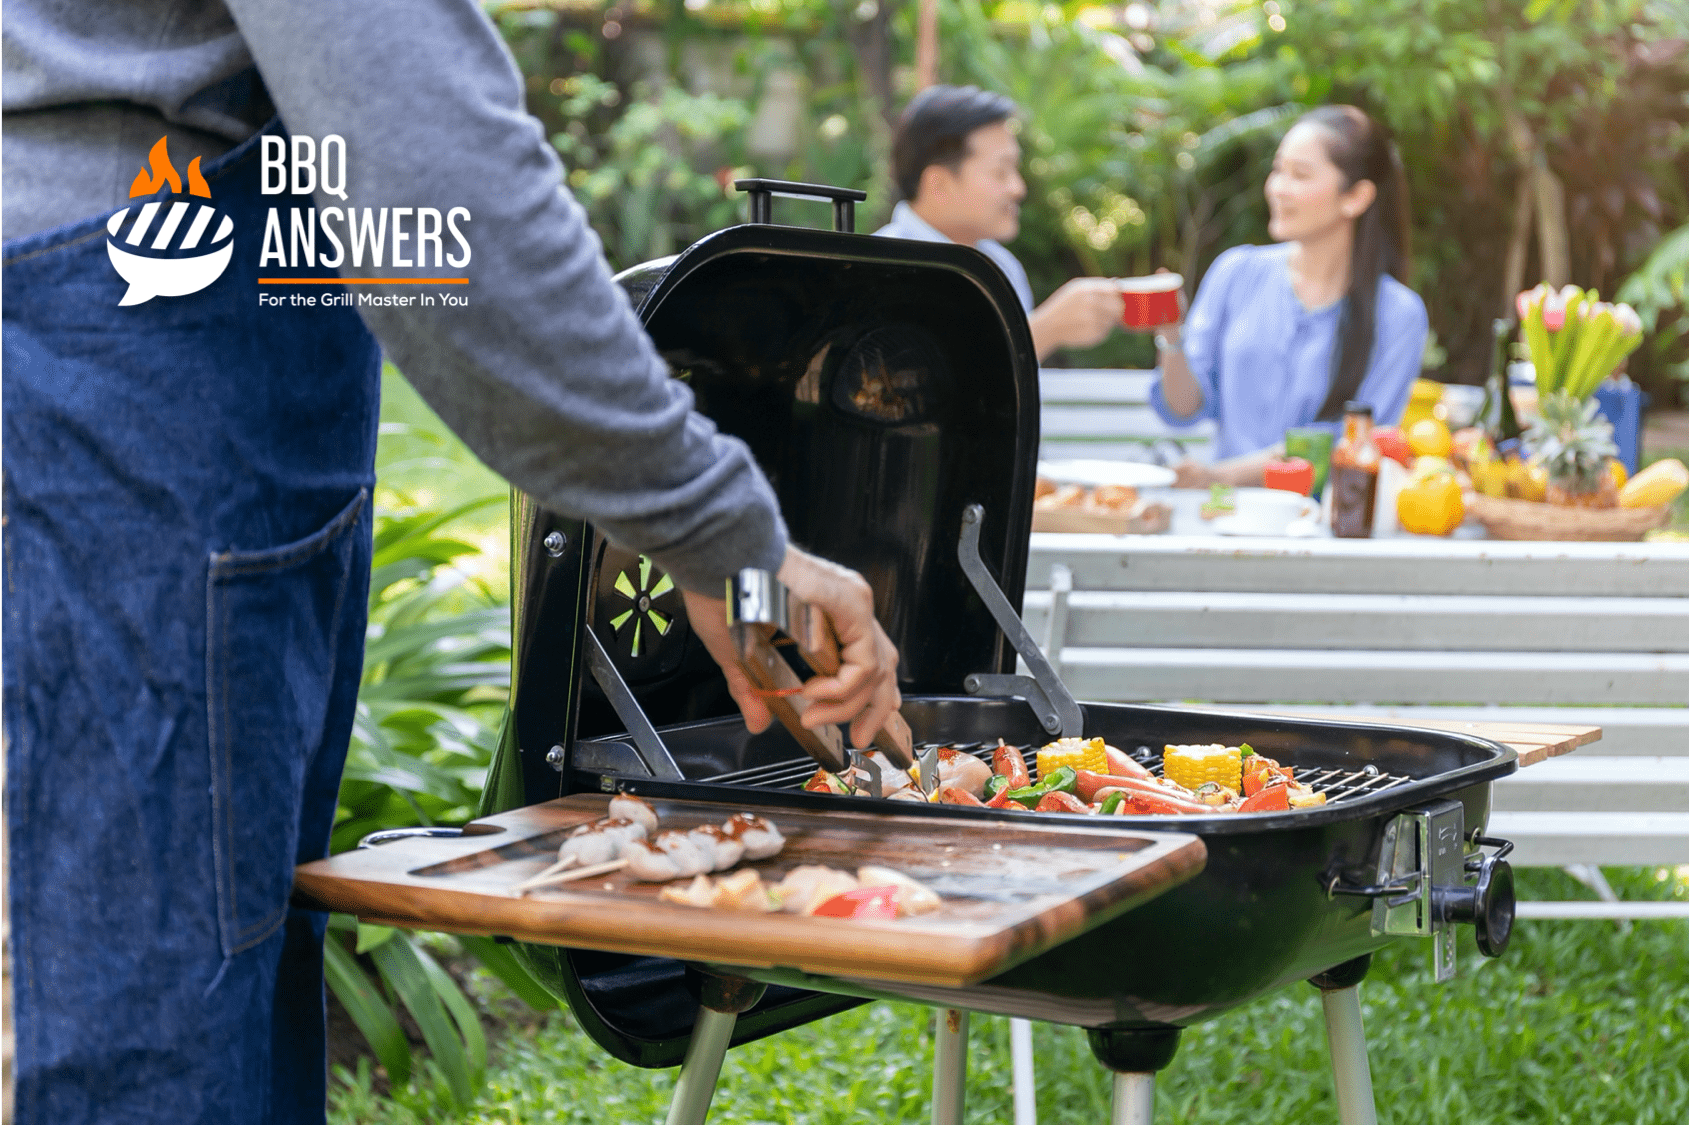 Dockable Grill Lid | Charcoal Grill | BBQanswers